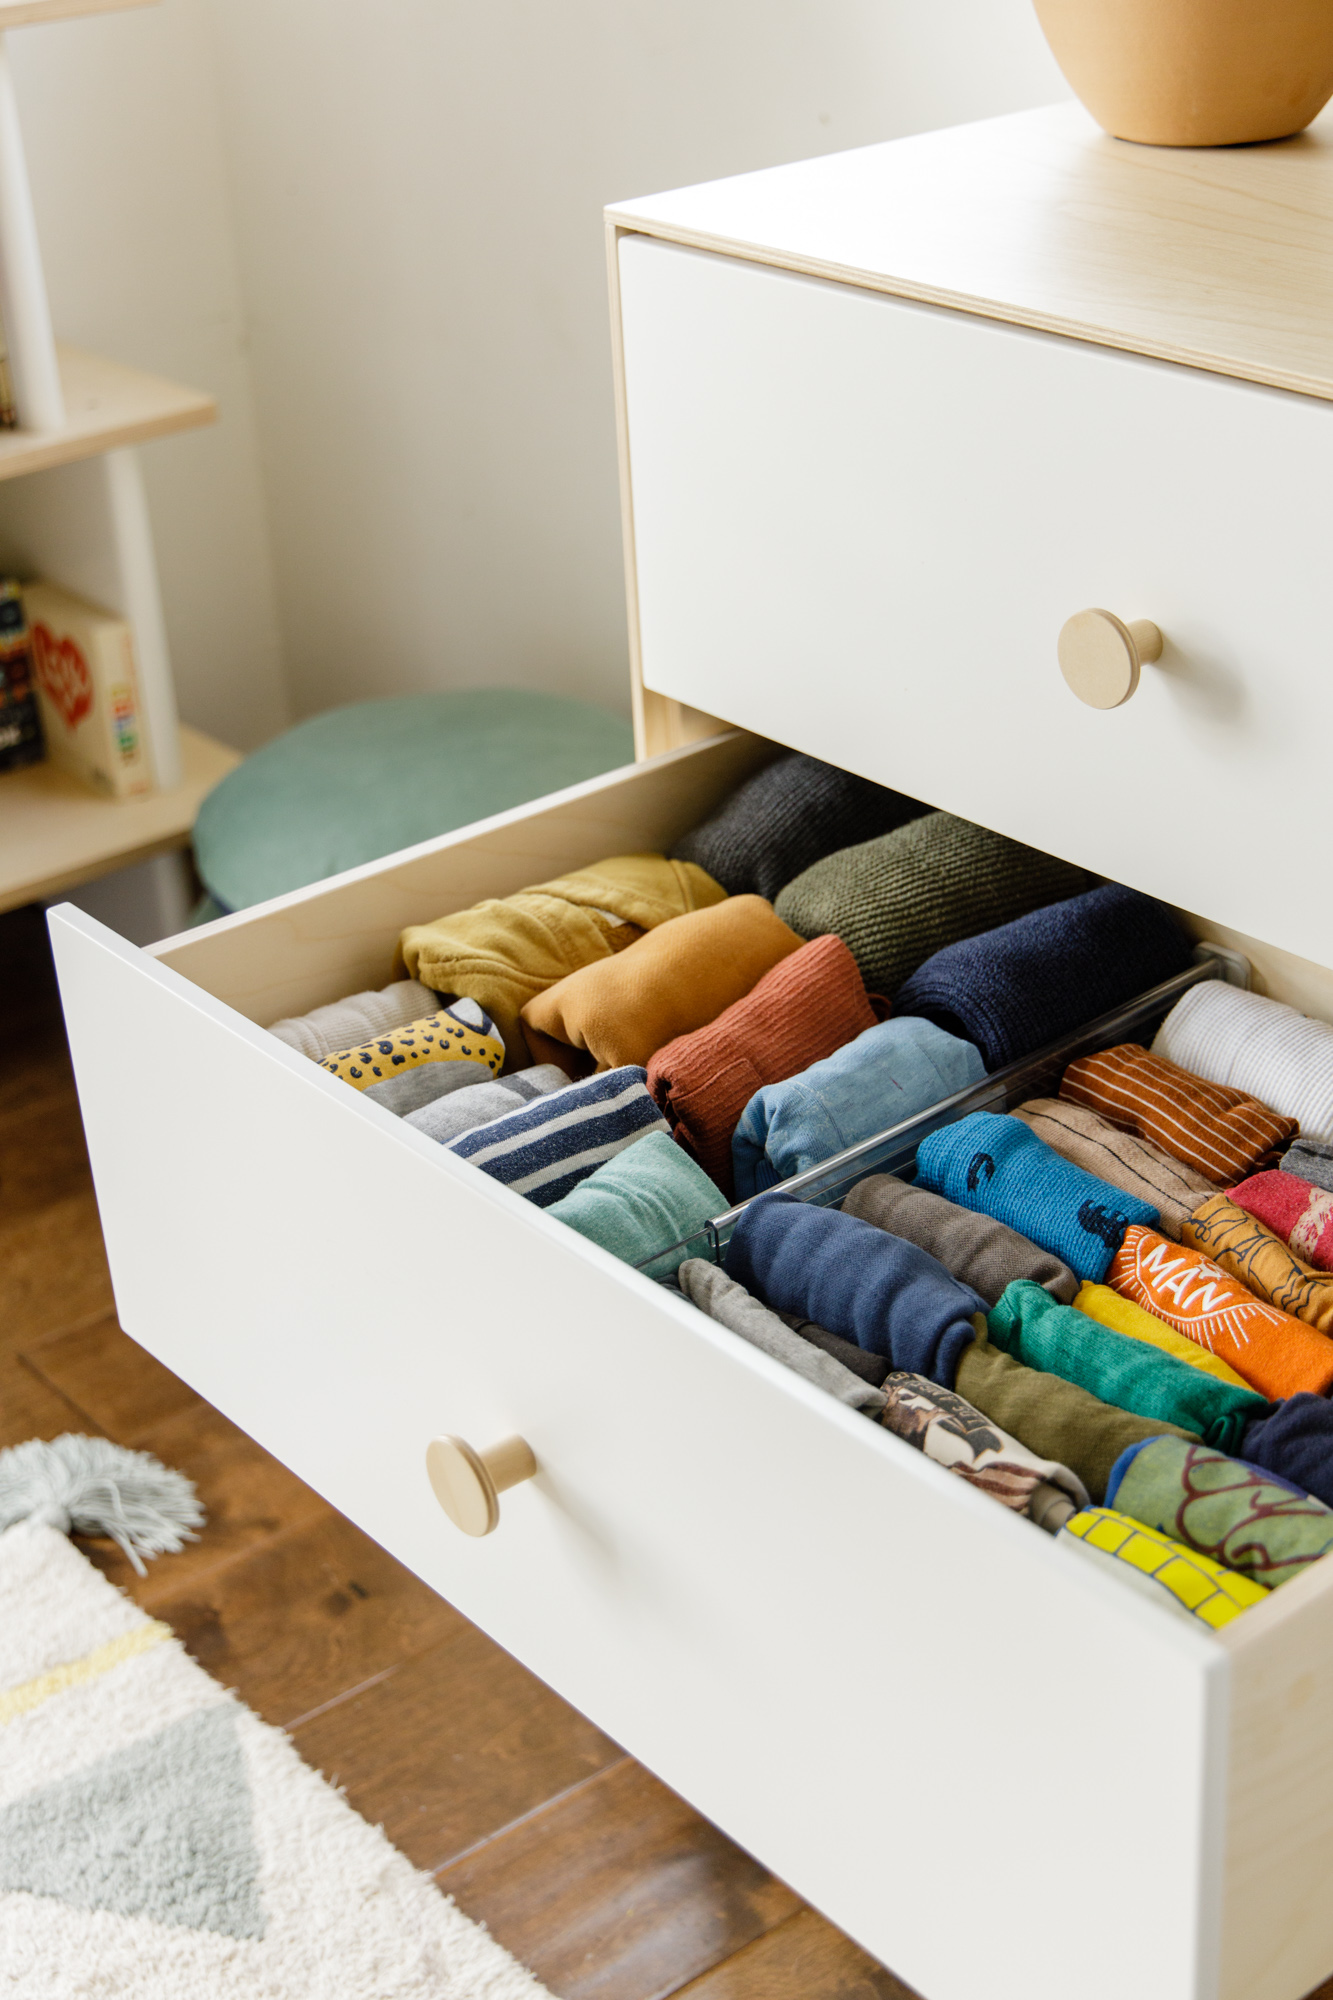 Clothes folded neatly in drawers